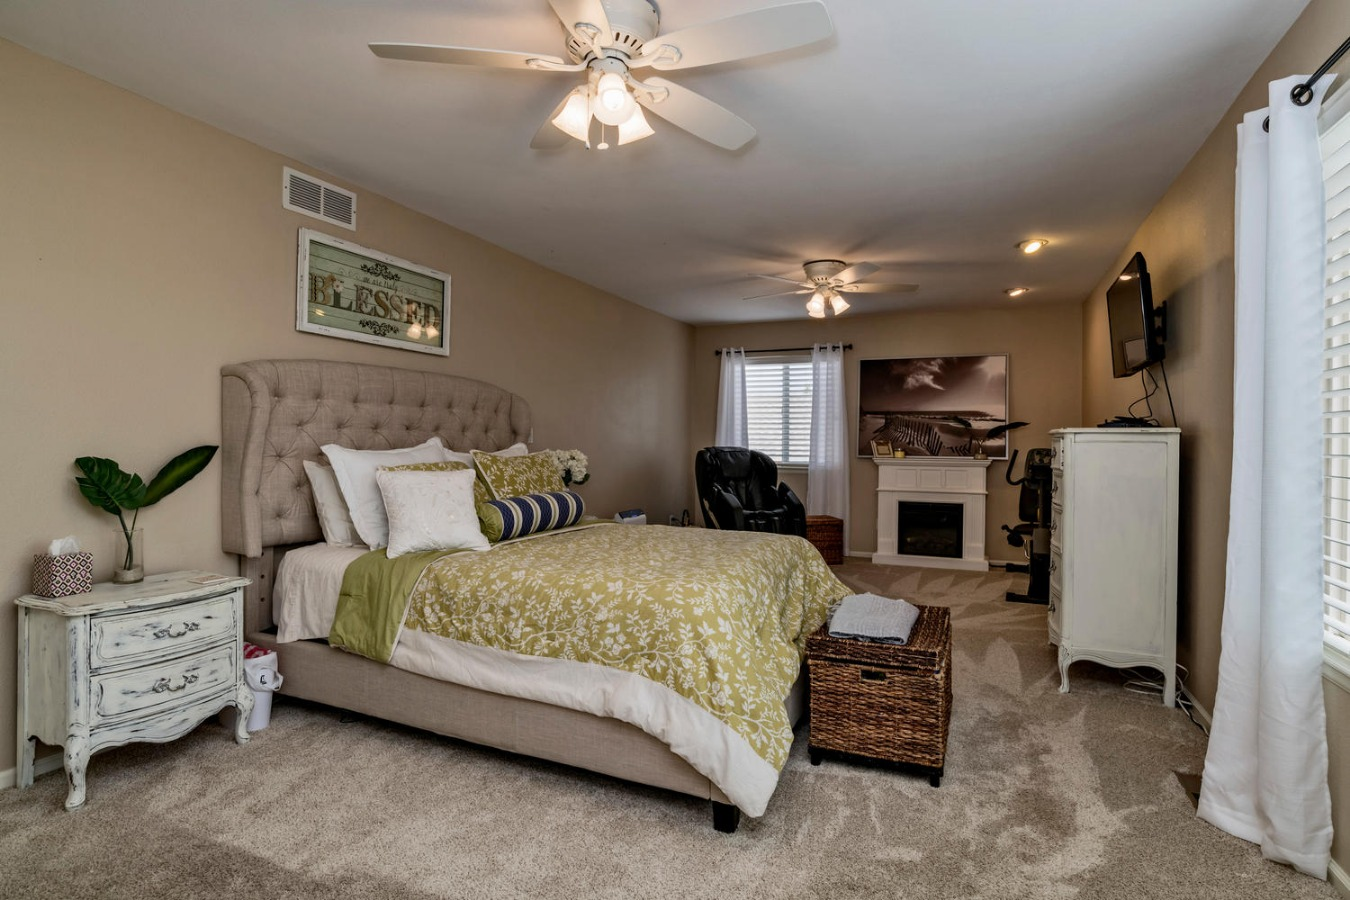 Room for Quiet Retreat Space in Master